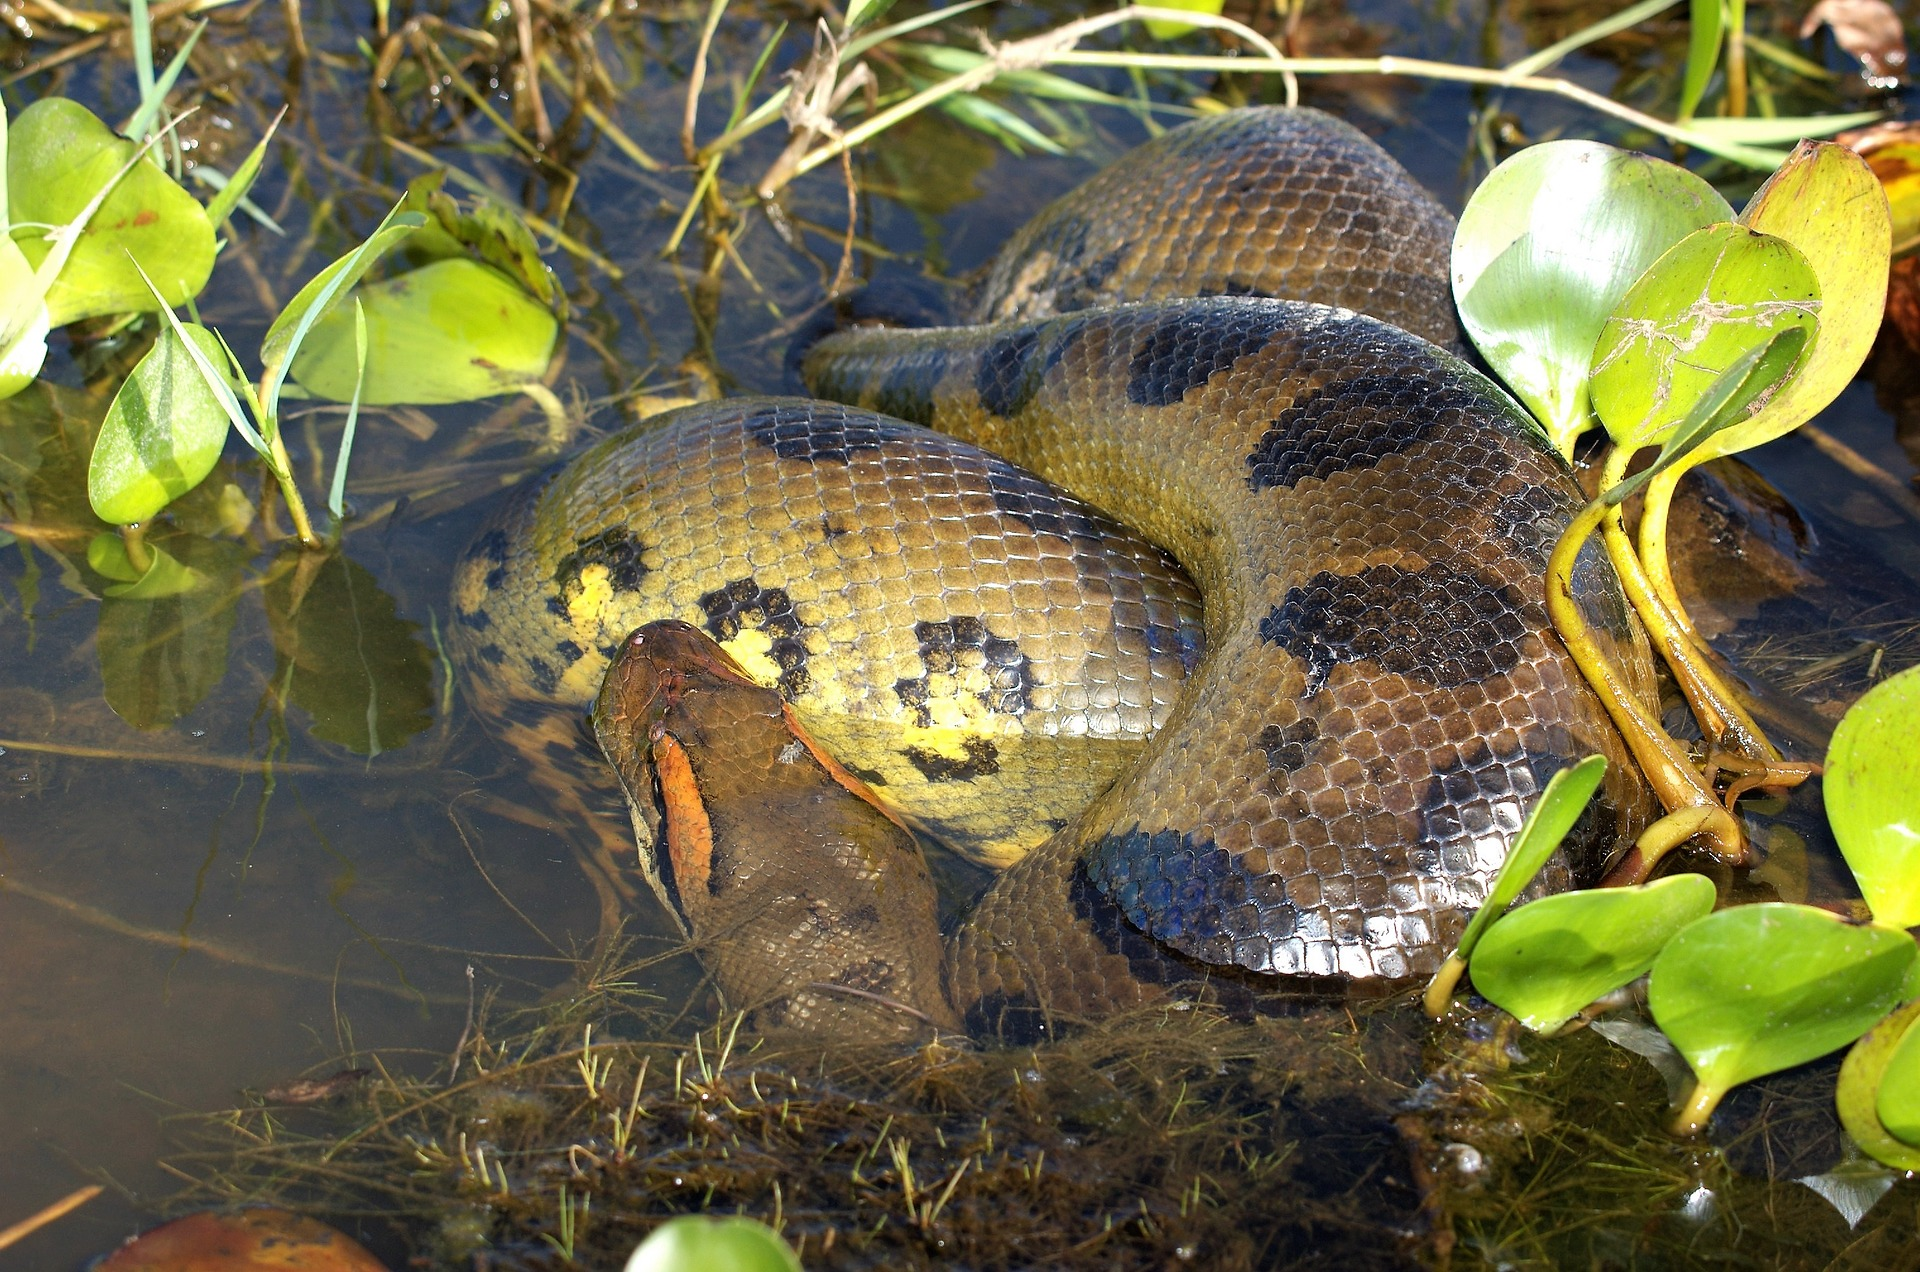 Biggest Snake in the World: Green Anaconda vs. Reticulated Python